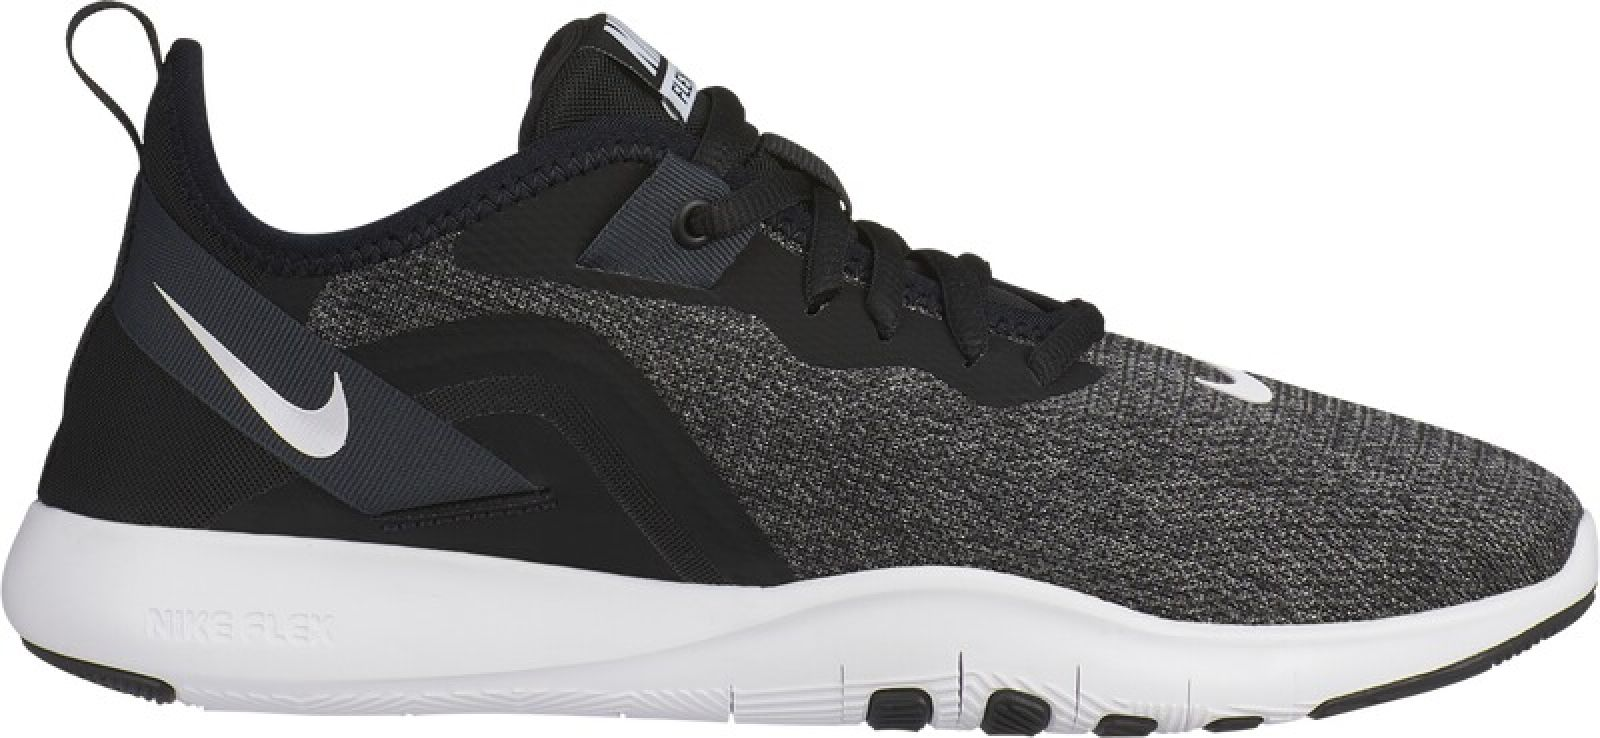 Ladies Nike Grey Fitness 9 Schuhe Flex Sport Details Wmns about Trainer Nike Black Trainings 8wkn0POX